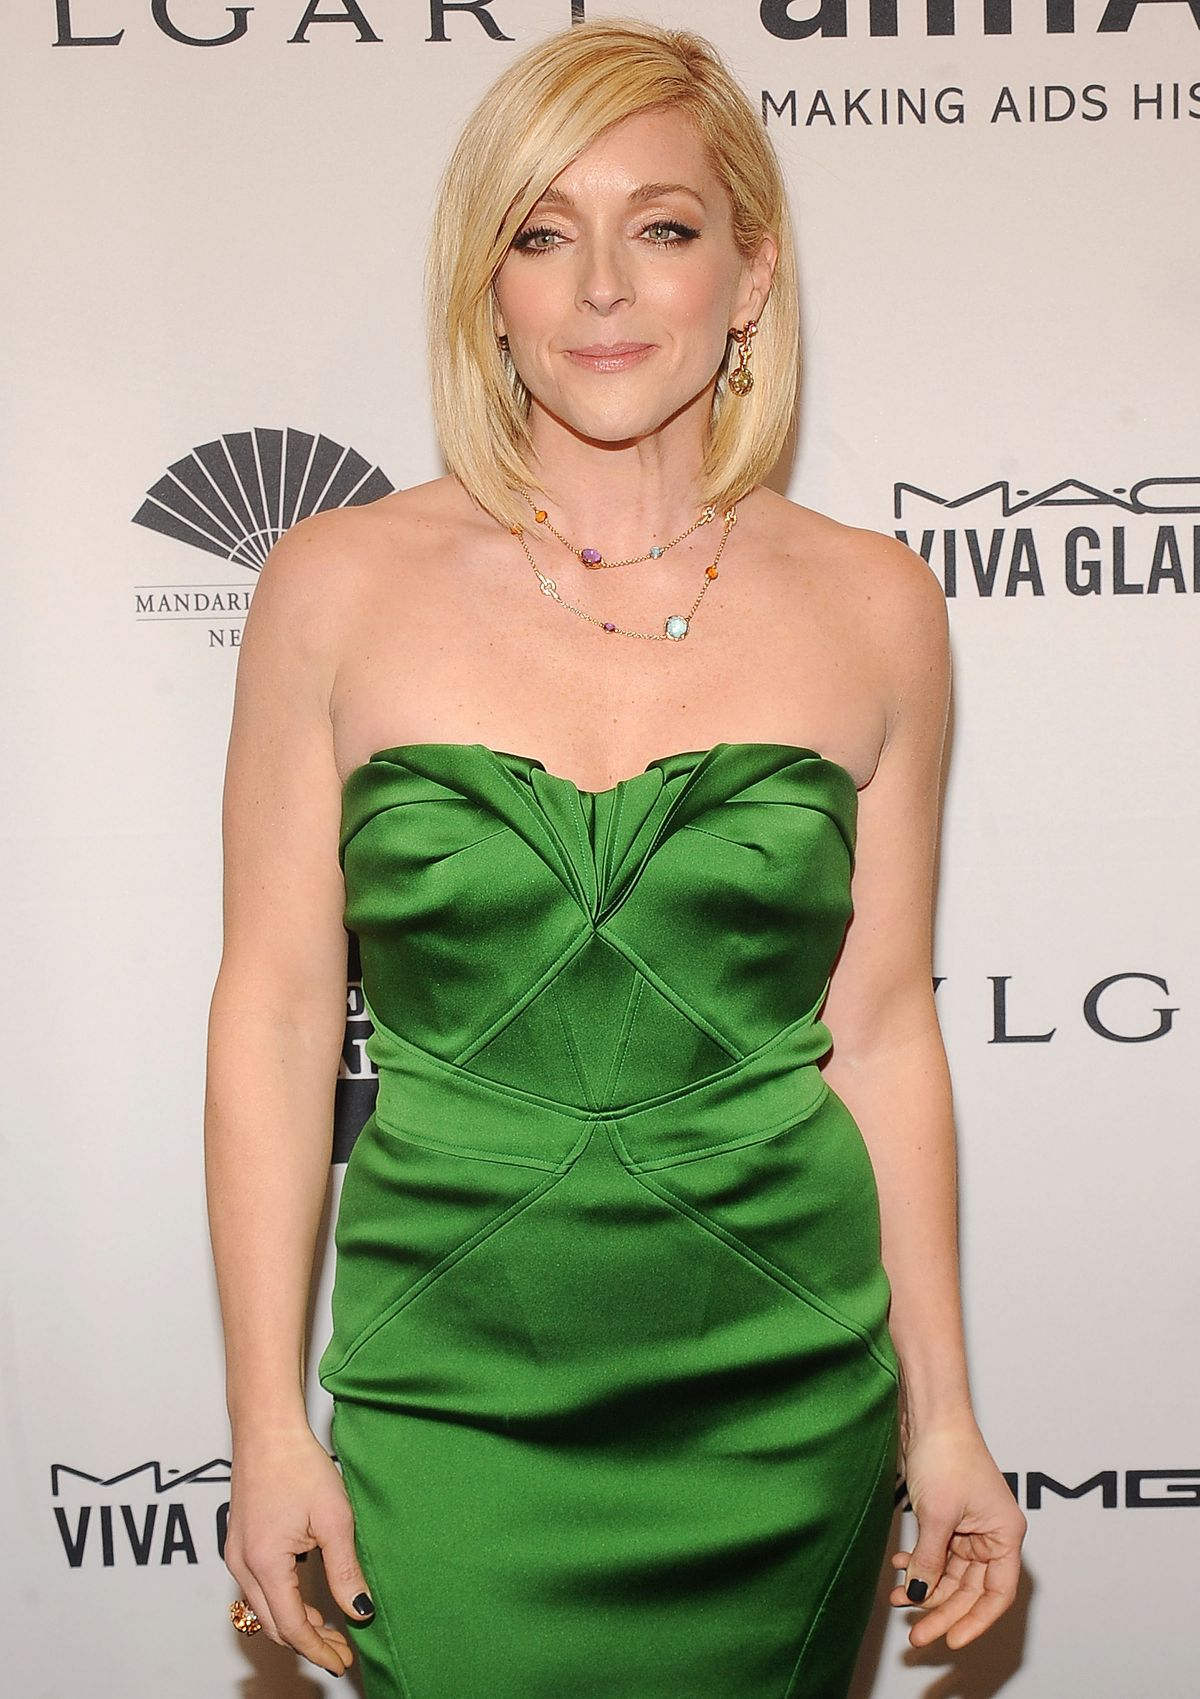 JANE KRAKOWSKI at 2014 AMFAR Gala in New York